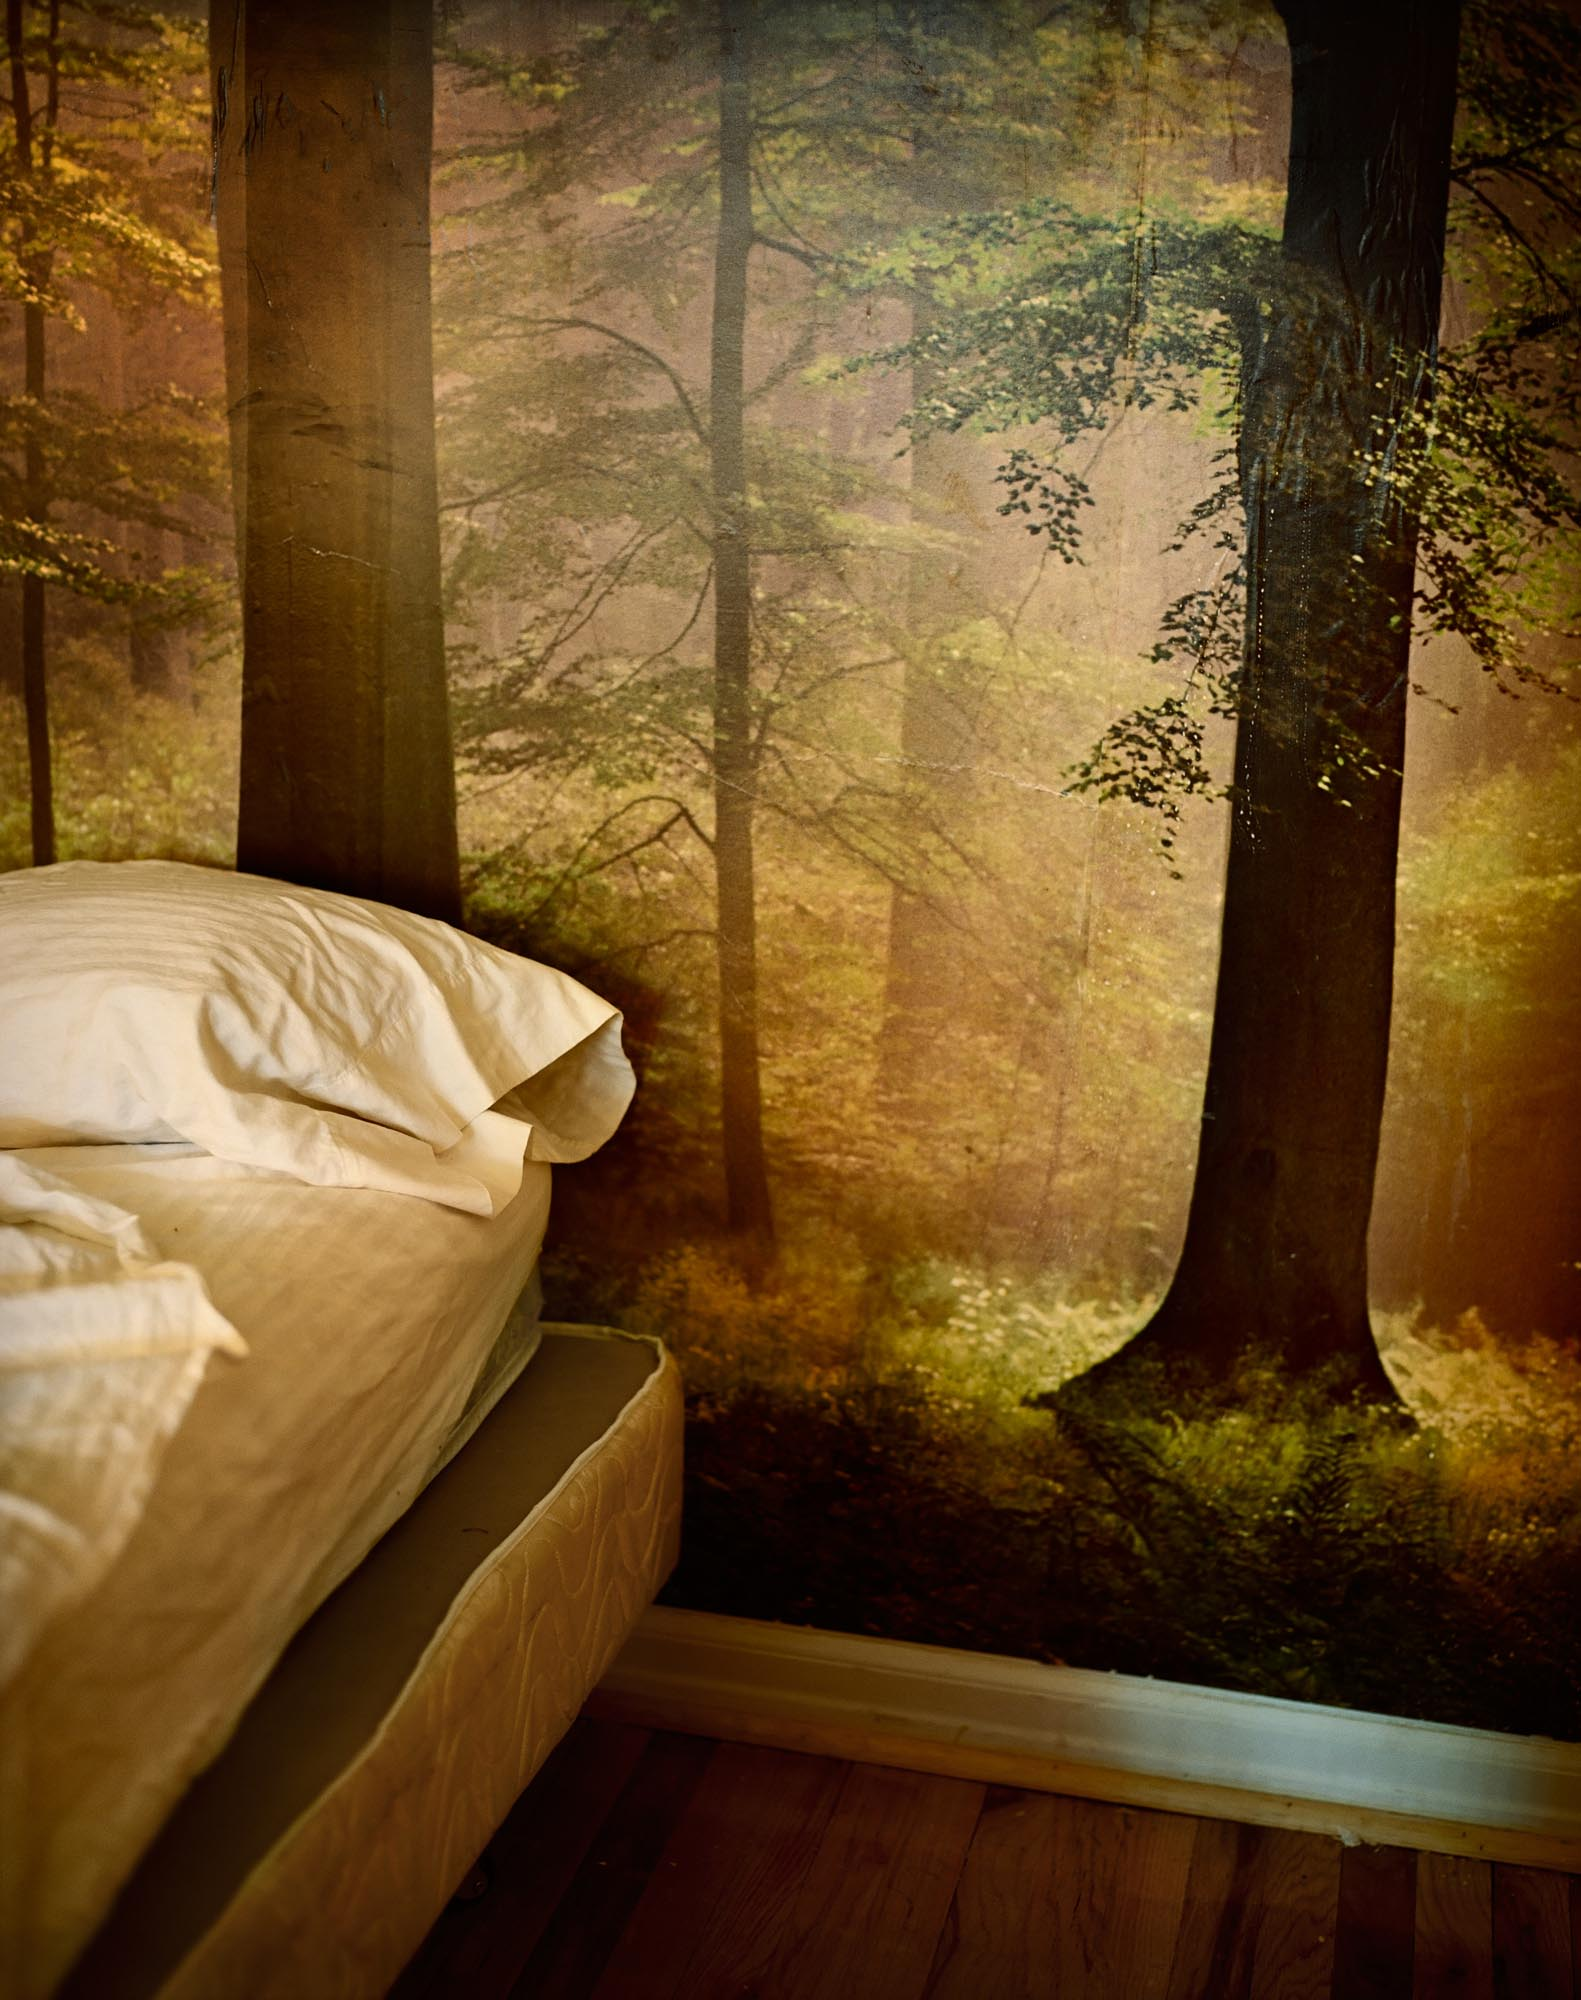 Bed and Woods  (2006)  20x24, Edition 1/7